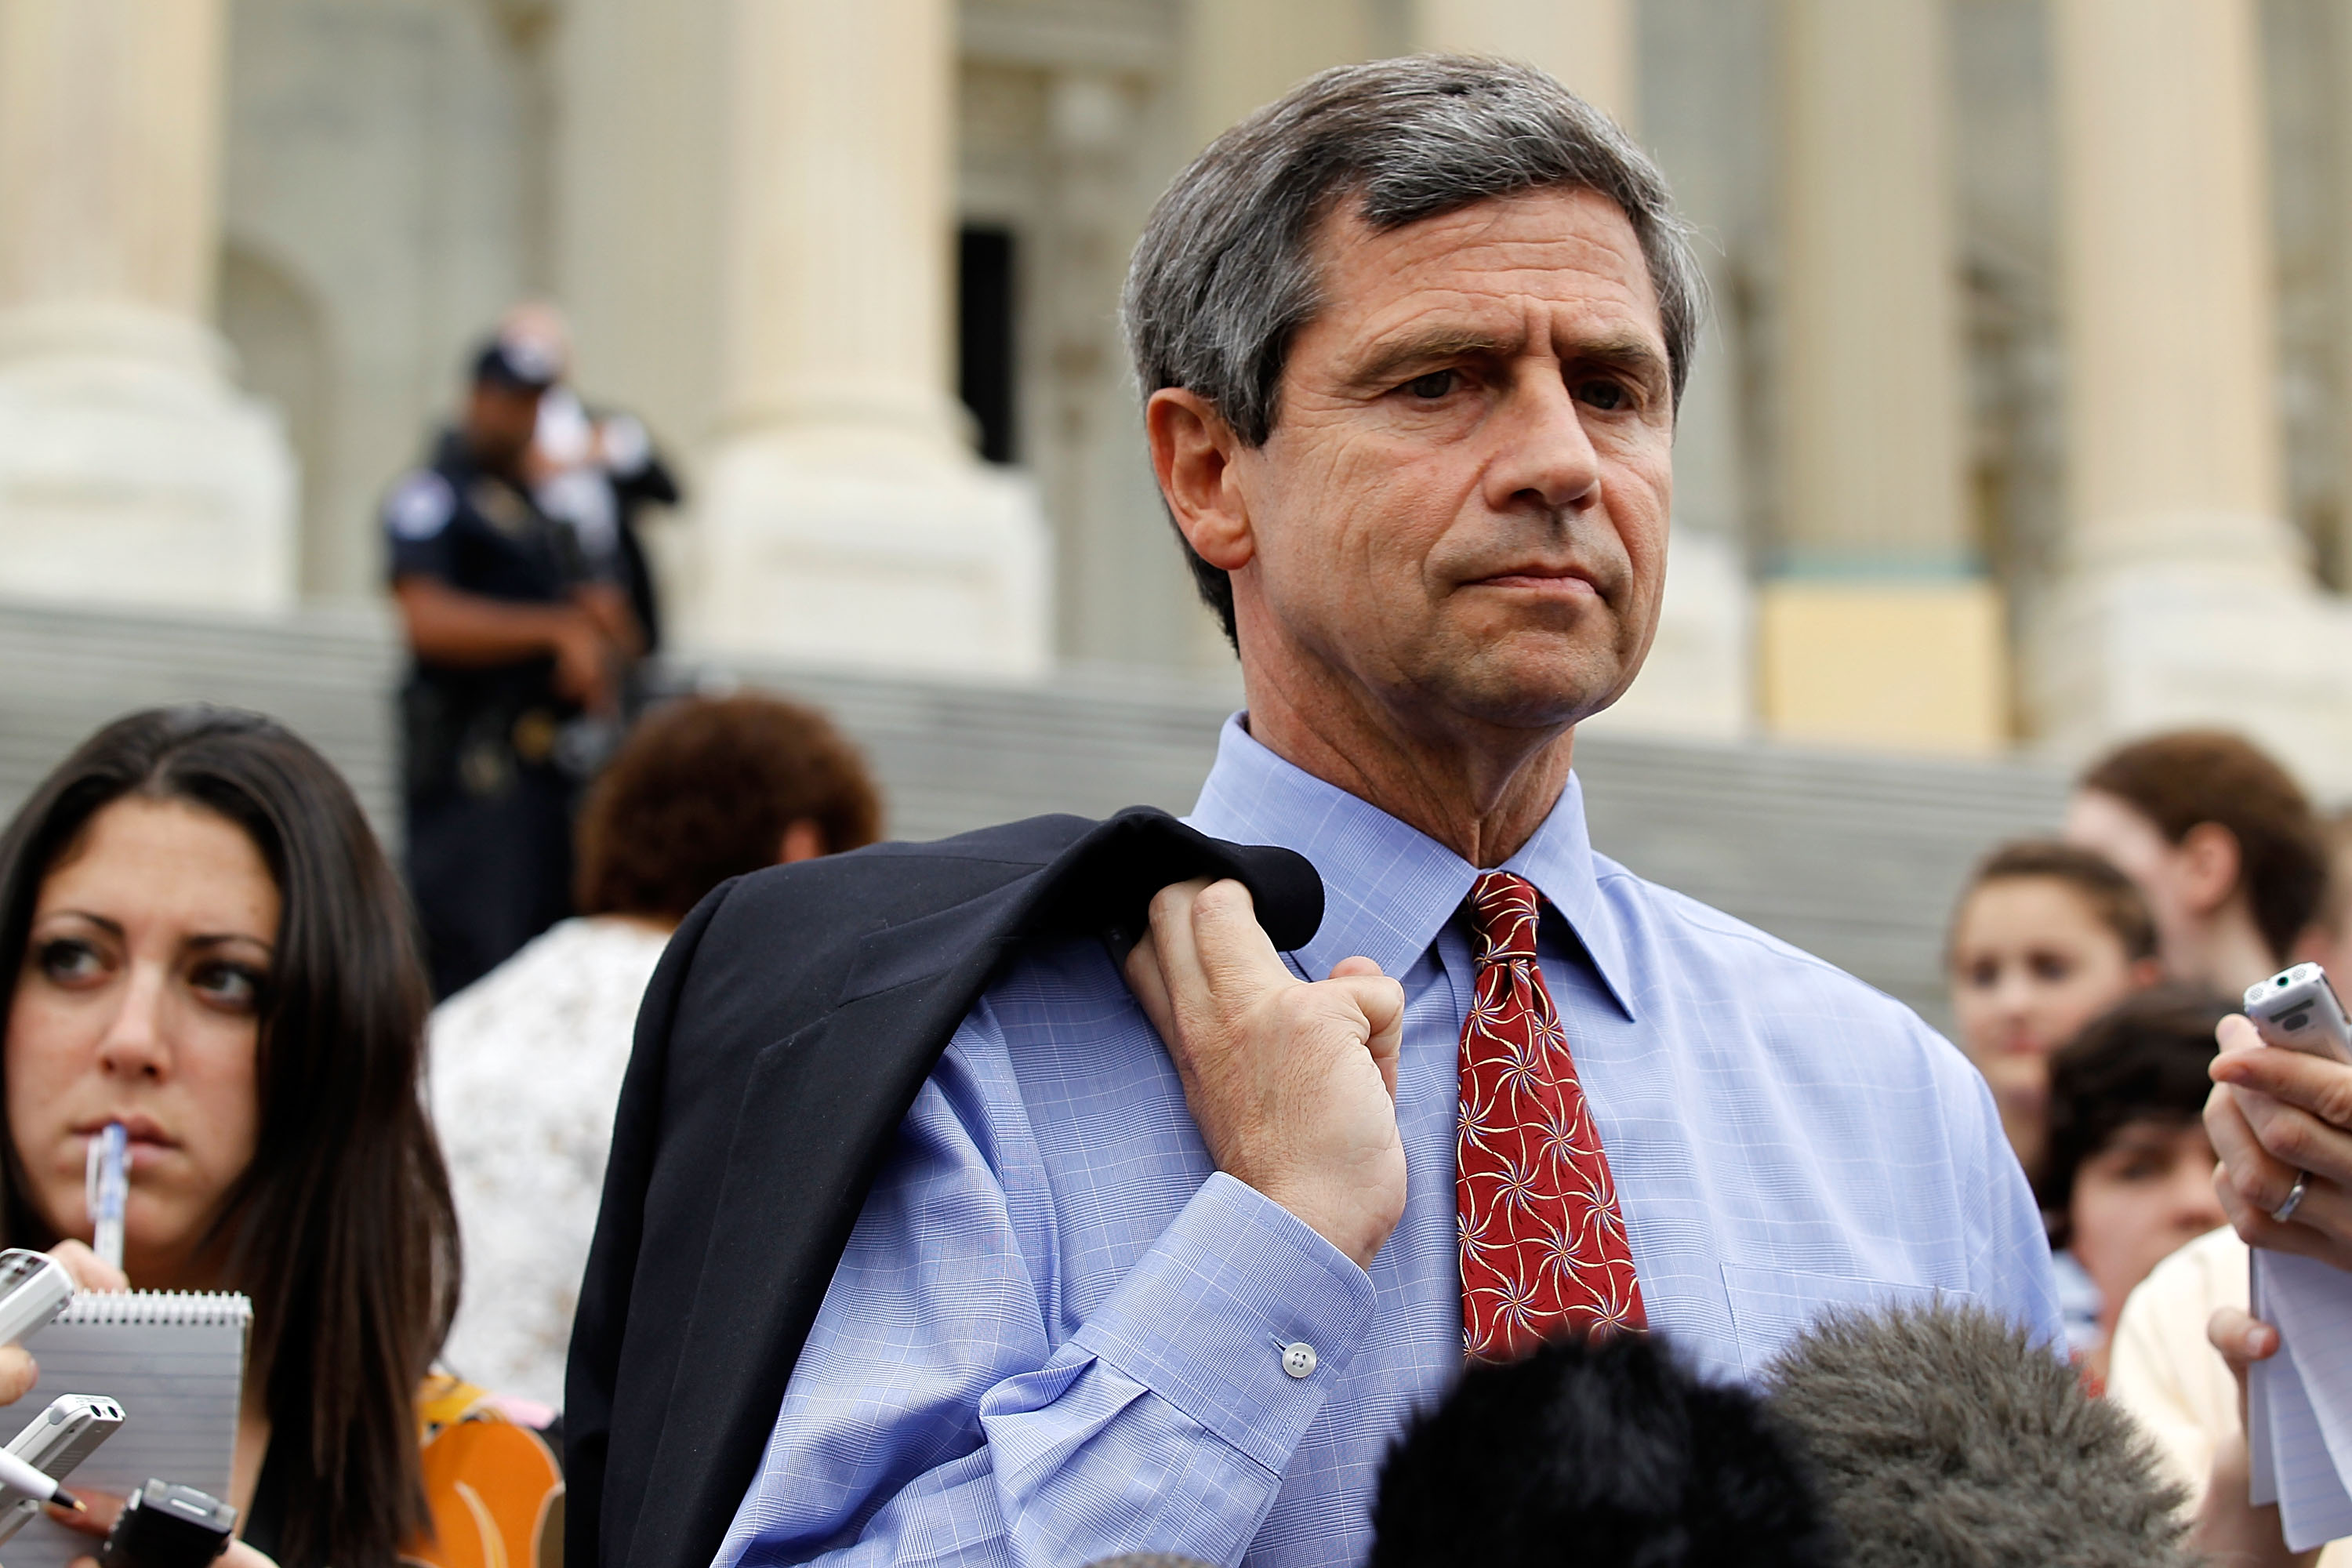 Rep. Joe Sestak (D-PA) speaks to the media outside the Capitol May 28, 2010 on Capitol Hill in Washington, DC. Sestak responded to the allegation of the job offer by the White House in exchange his drop-out from the Democratic senate primary against Sen. Arlen Specter. (Photo by Alex Wong/Getty Images)